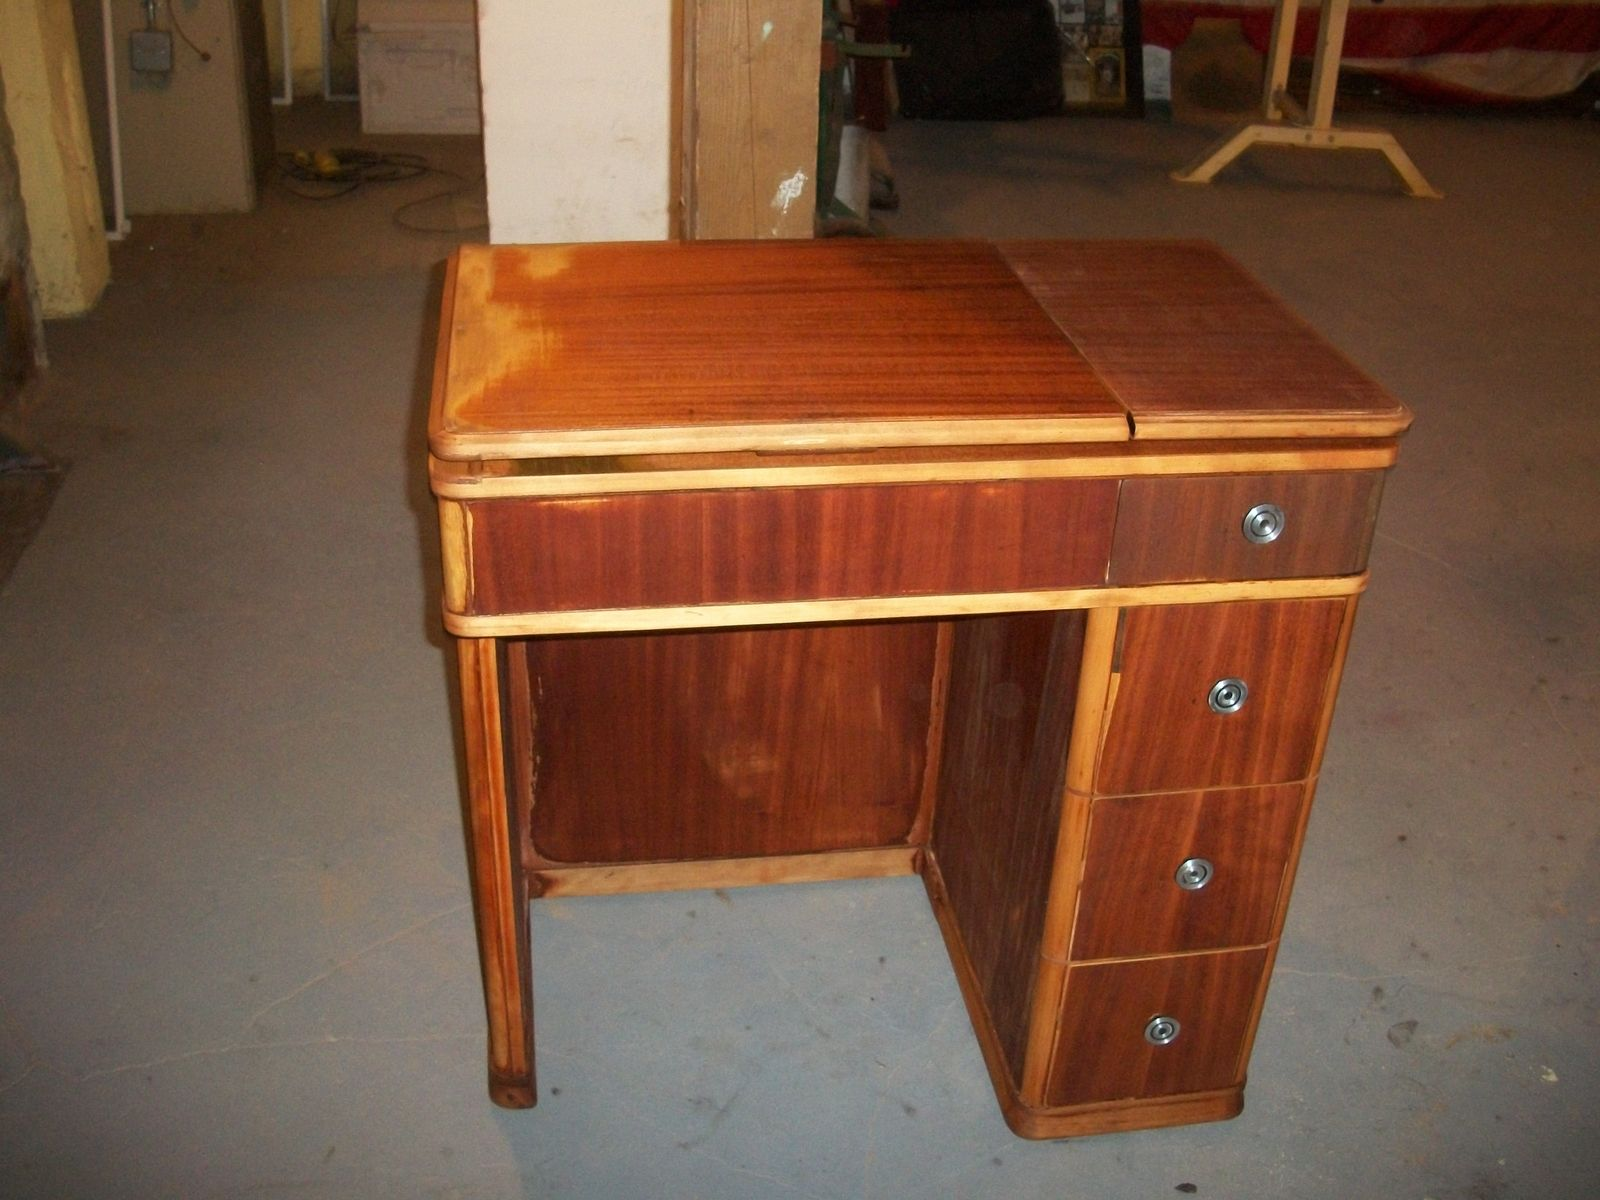 Hand Crafted Vintage Sewing Desk Re Purposed Into A Vanity